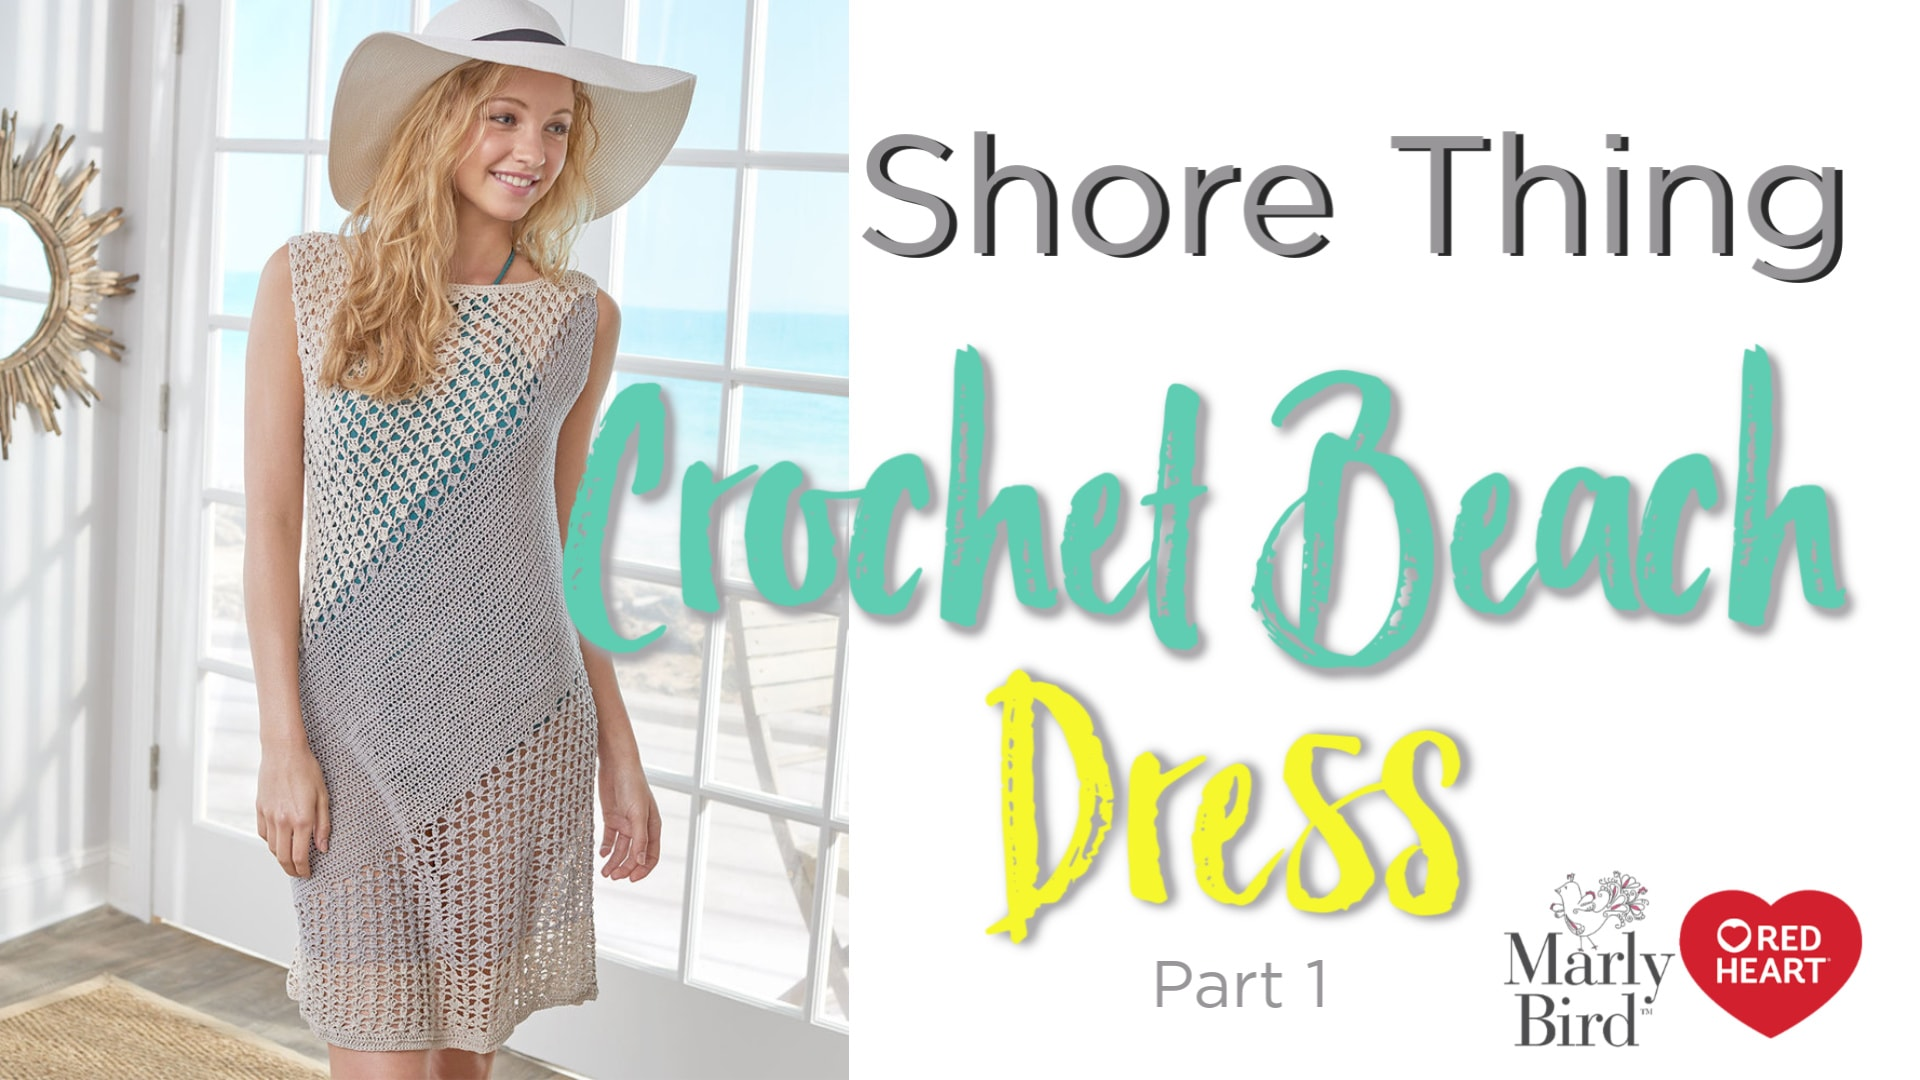 Learn how to crochet the Shore Thing. A Crochet Beach Dress! With this video tutorial and pattern.